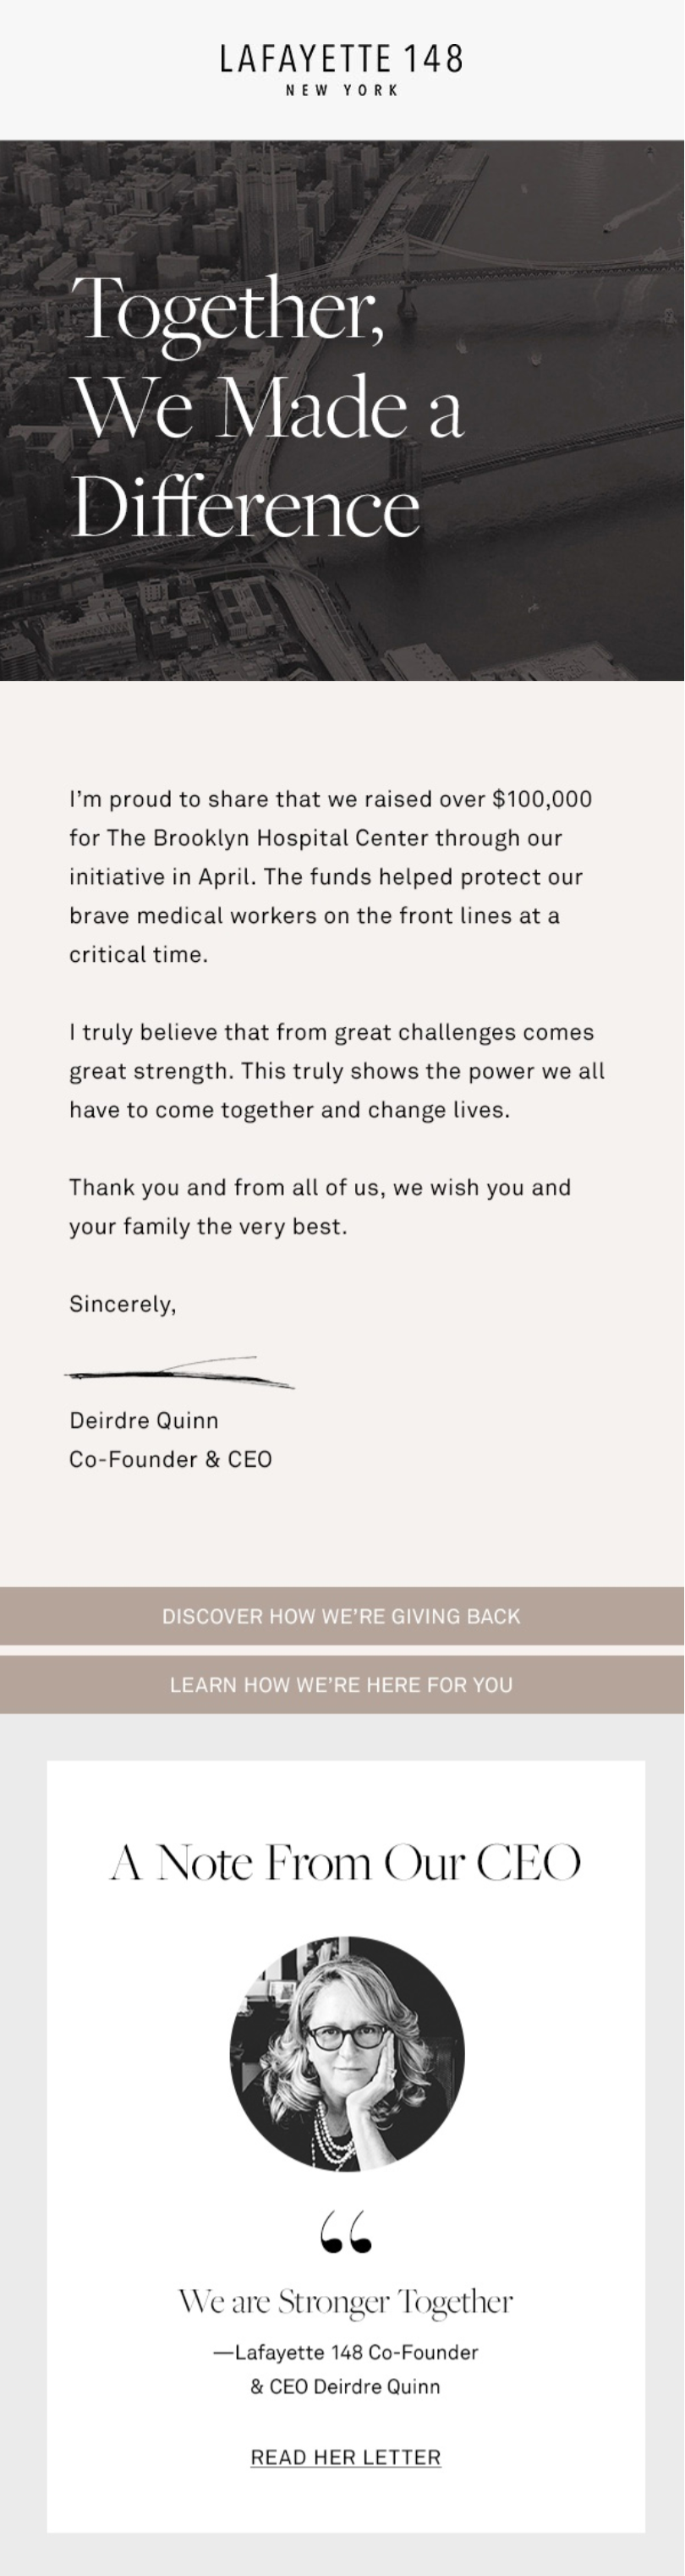 ny-a-thank-you-from-our-ceo